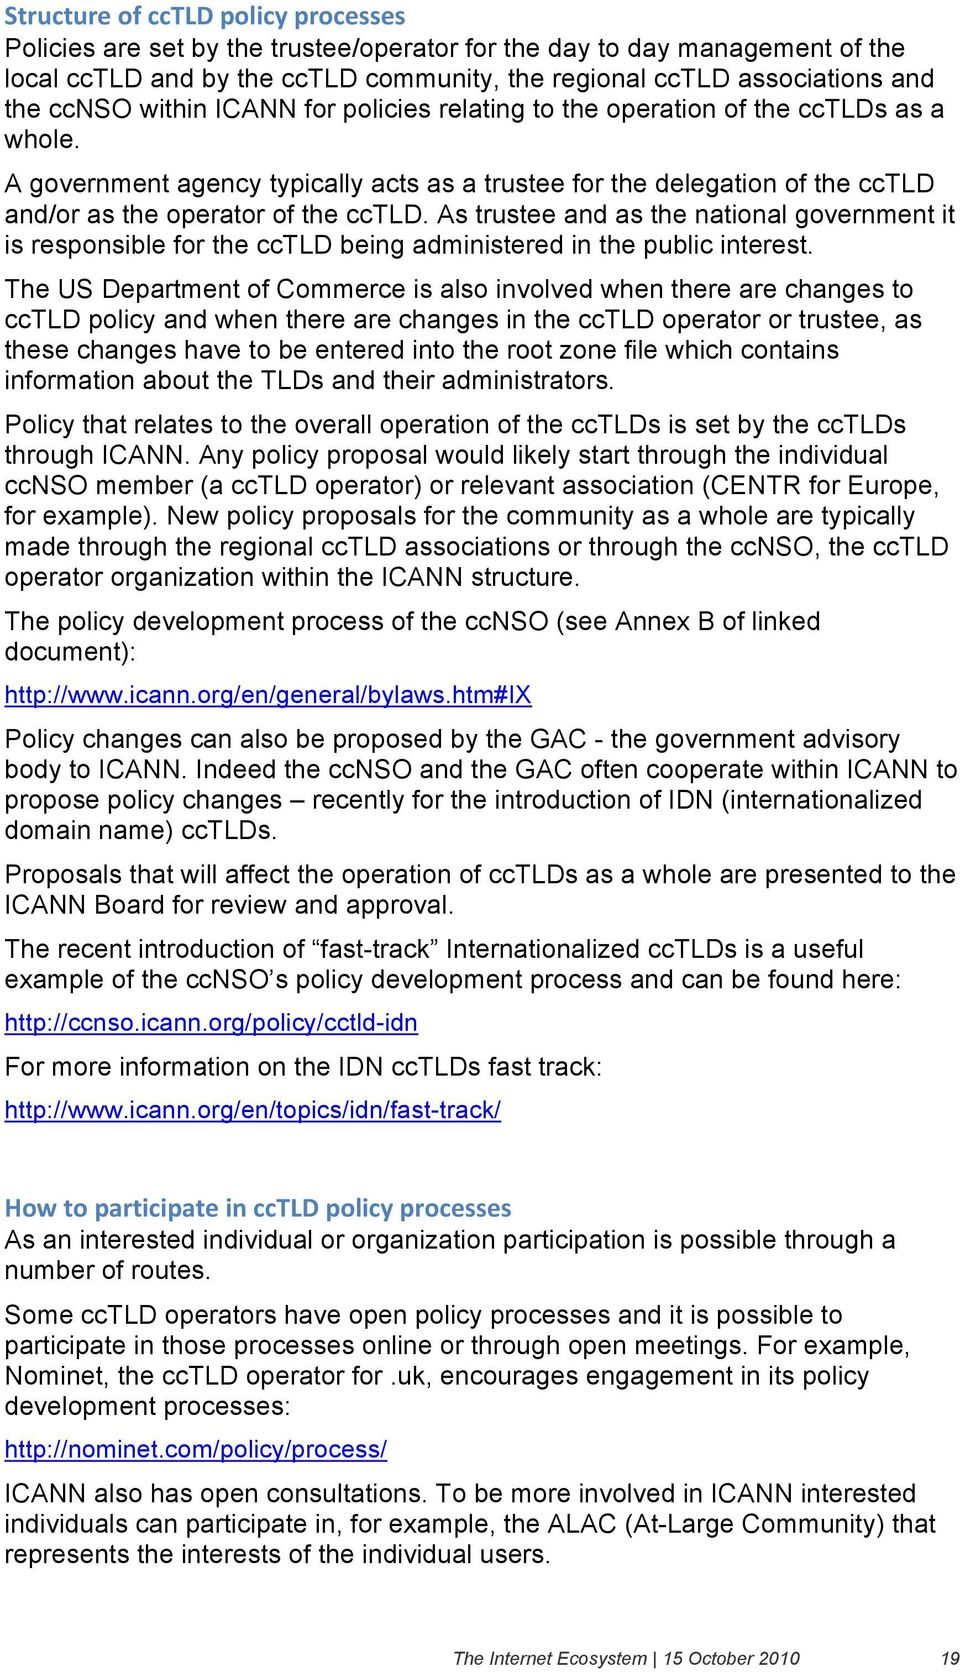 As trustee and as the national government it is responsible for the cctld being administered in the public interest.